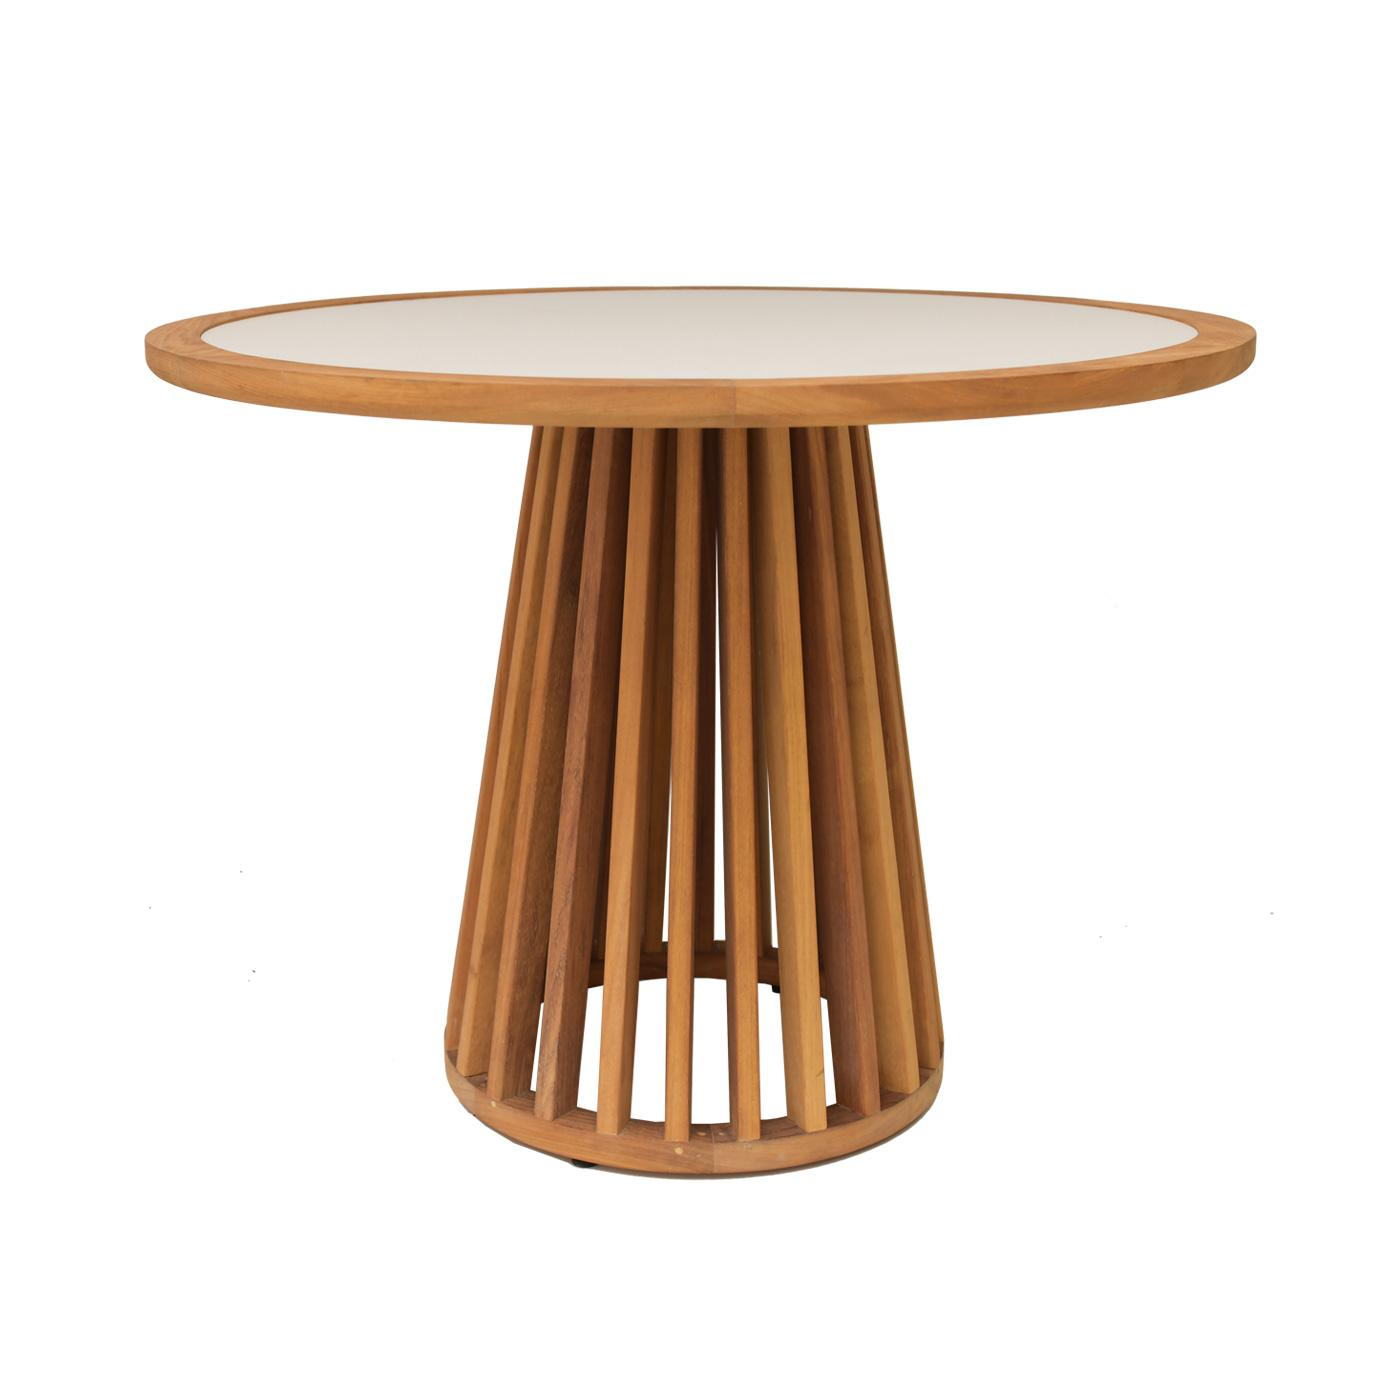 Serengeti Round Porcelain Top Dining Table